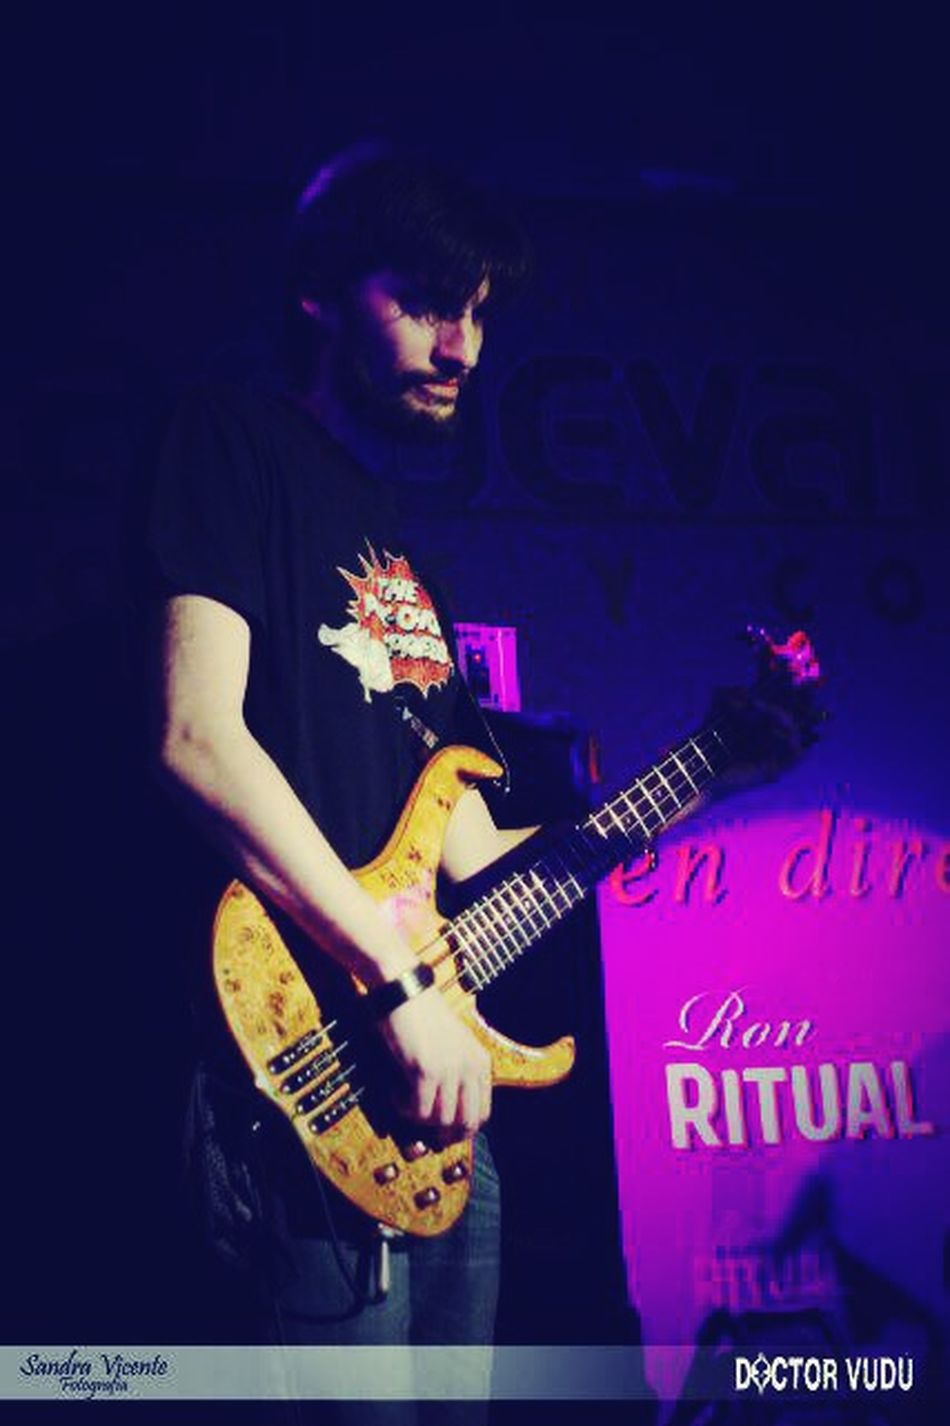 Bass Guitar Live Music My Life Nightcall